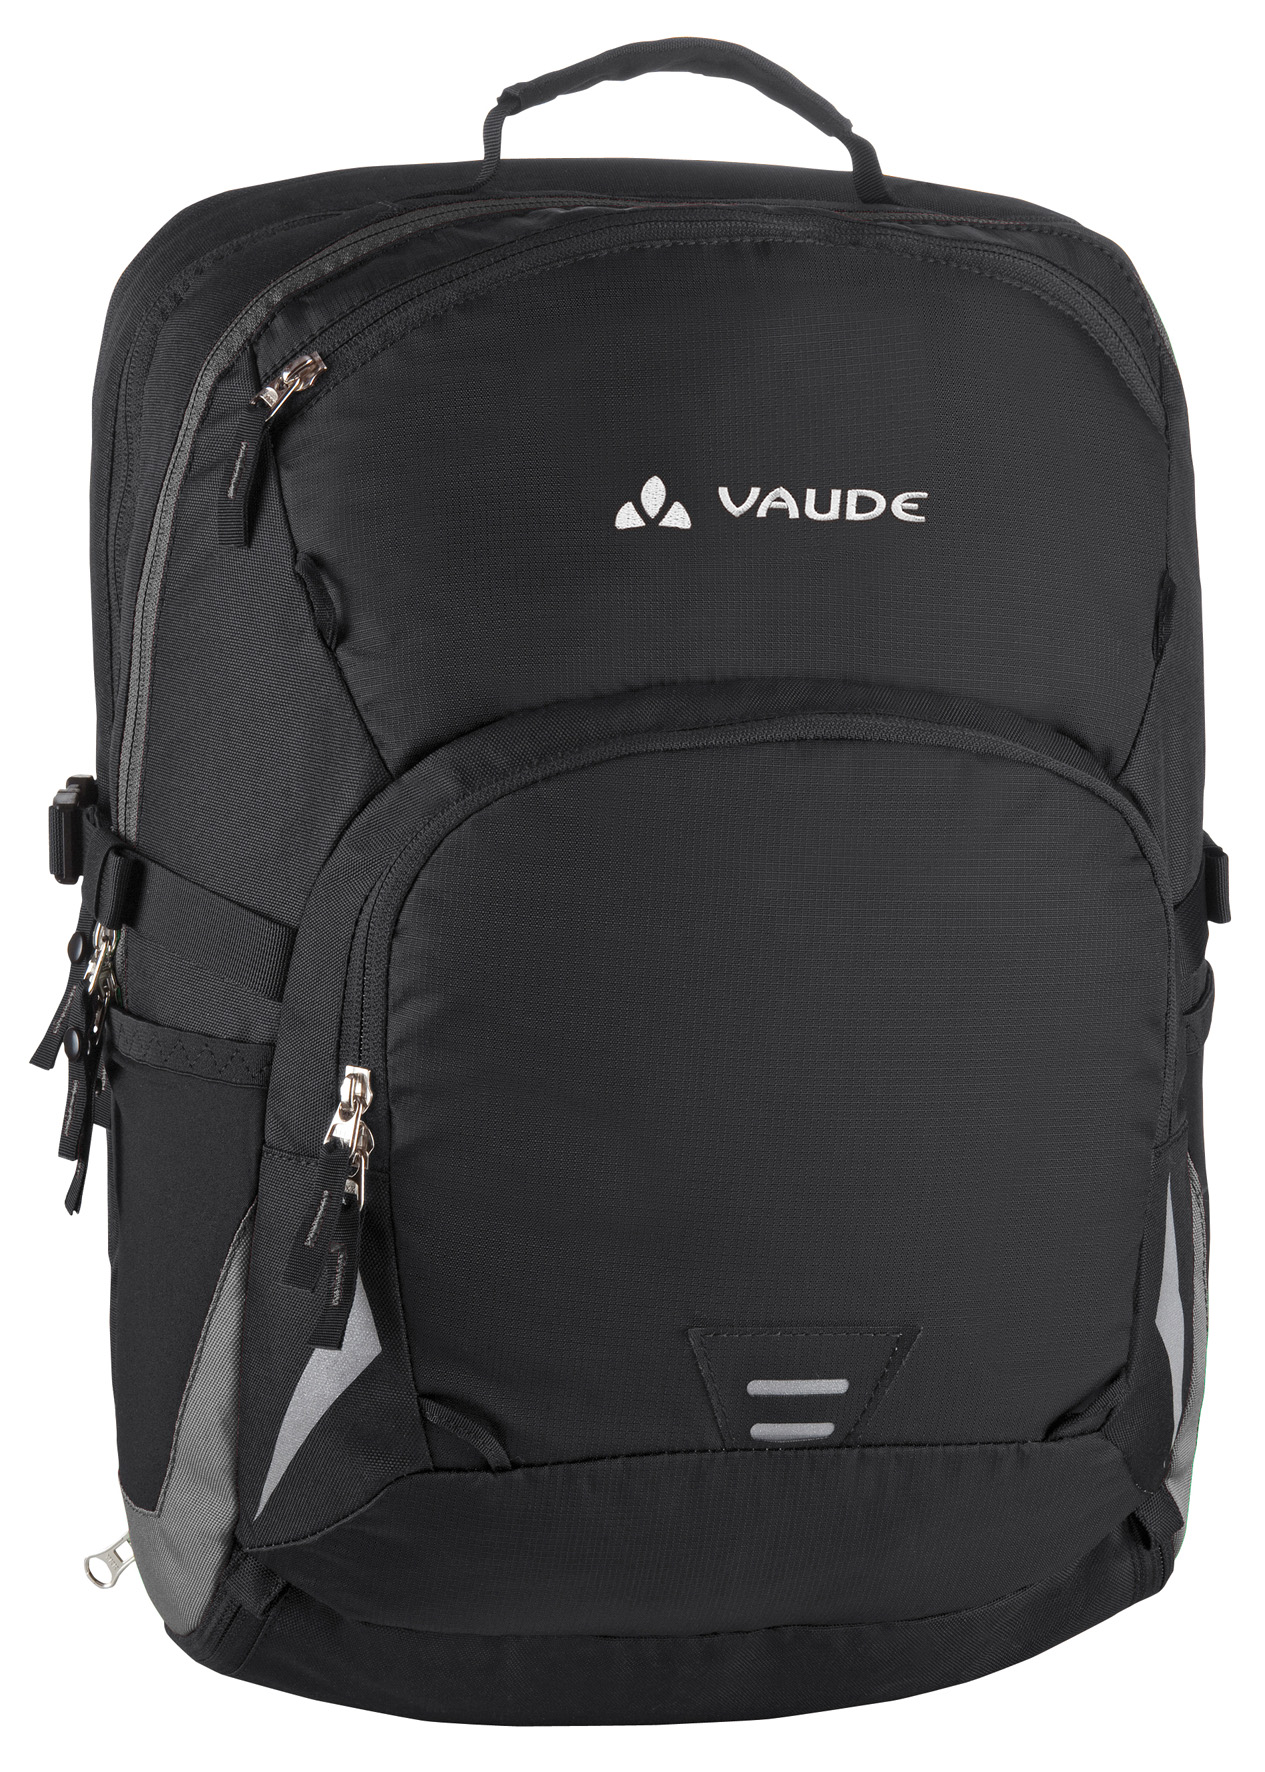 VAUDE Cycle 28 black/anthracite  - schneider-sports